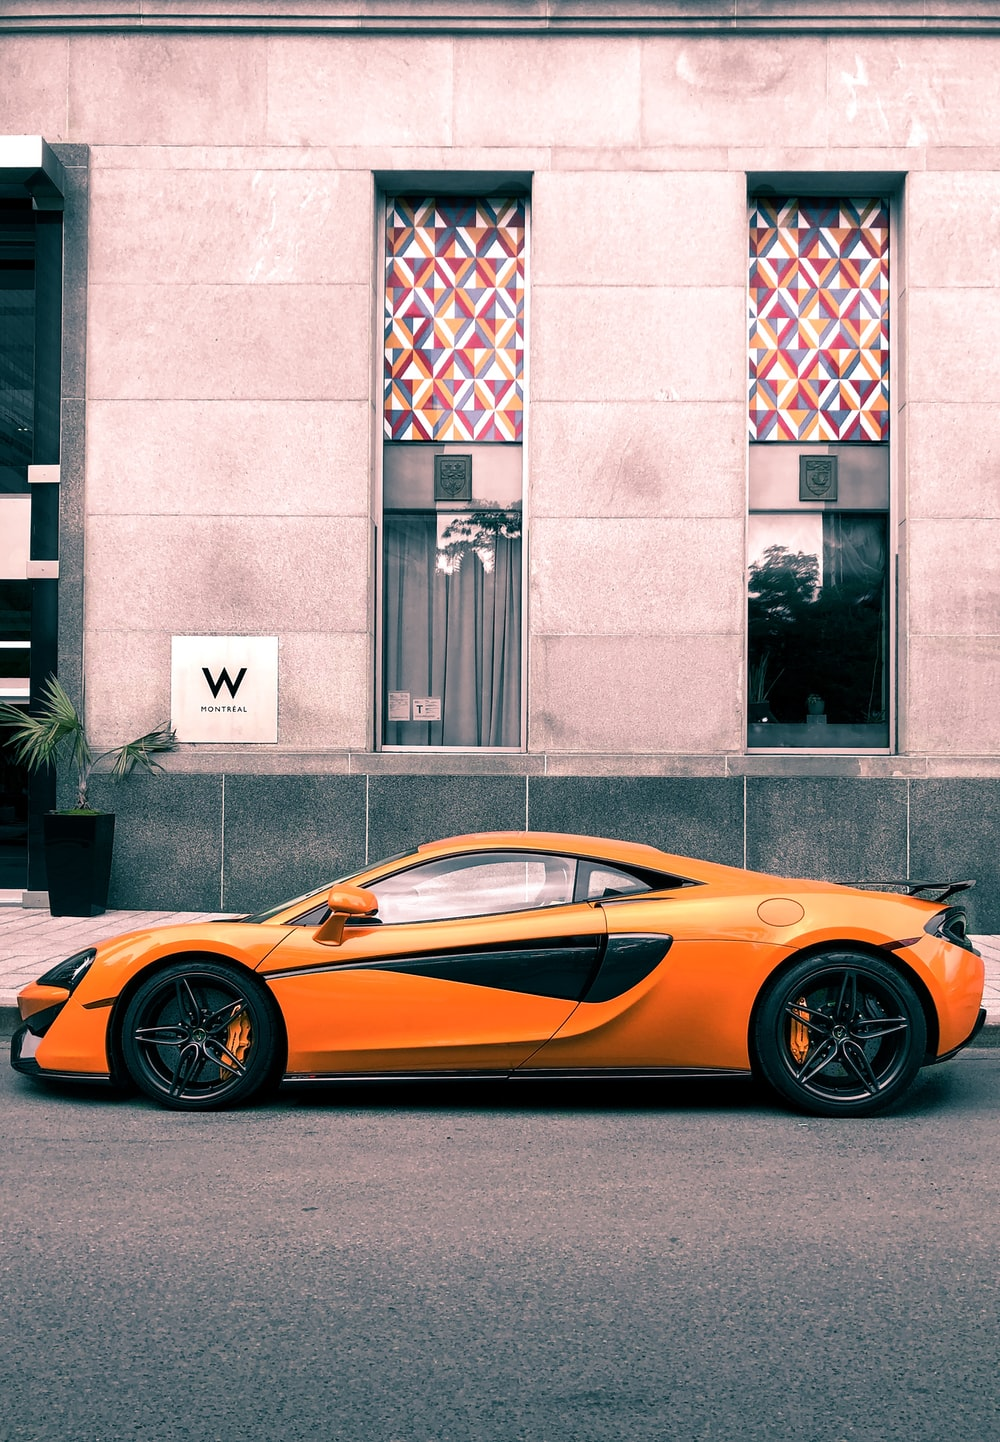 orange Mclaren MPr-12c parked at roadside